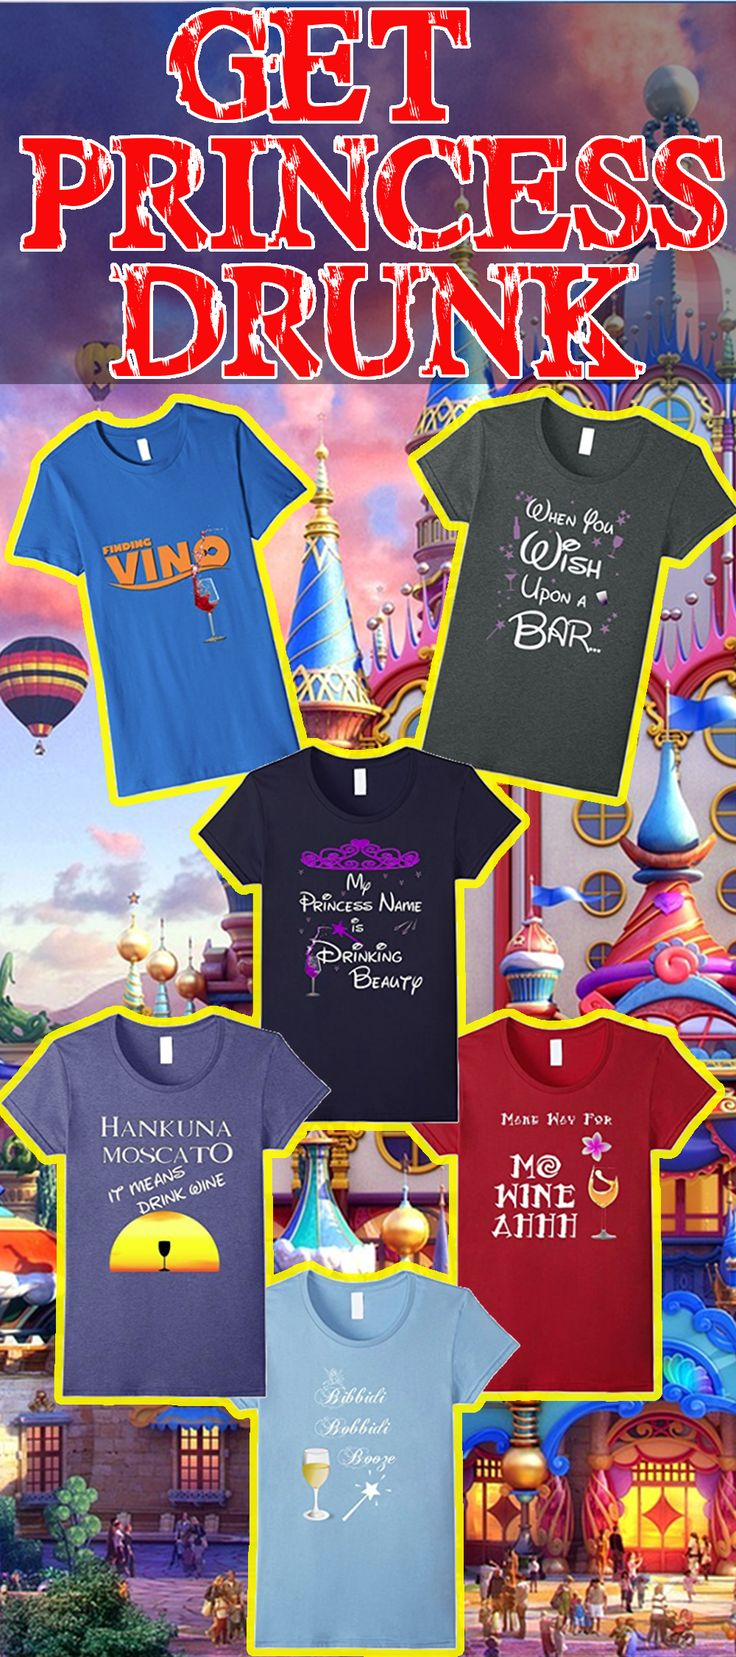 #princess #princessdrunk It's time to get princess drunk and you may as well wear the shirt while doing it! When you wish upon a bar magic happens! ALl on amazon now with free shipping for Prime members. Great fun drinking shirts for women